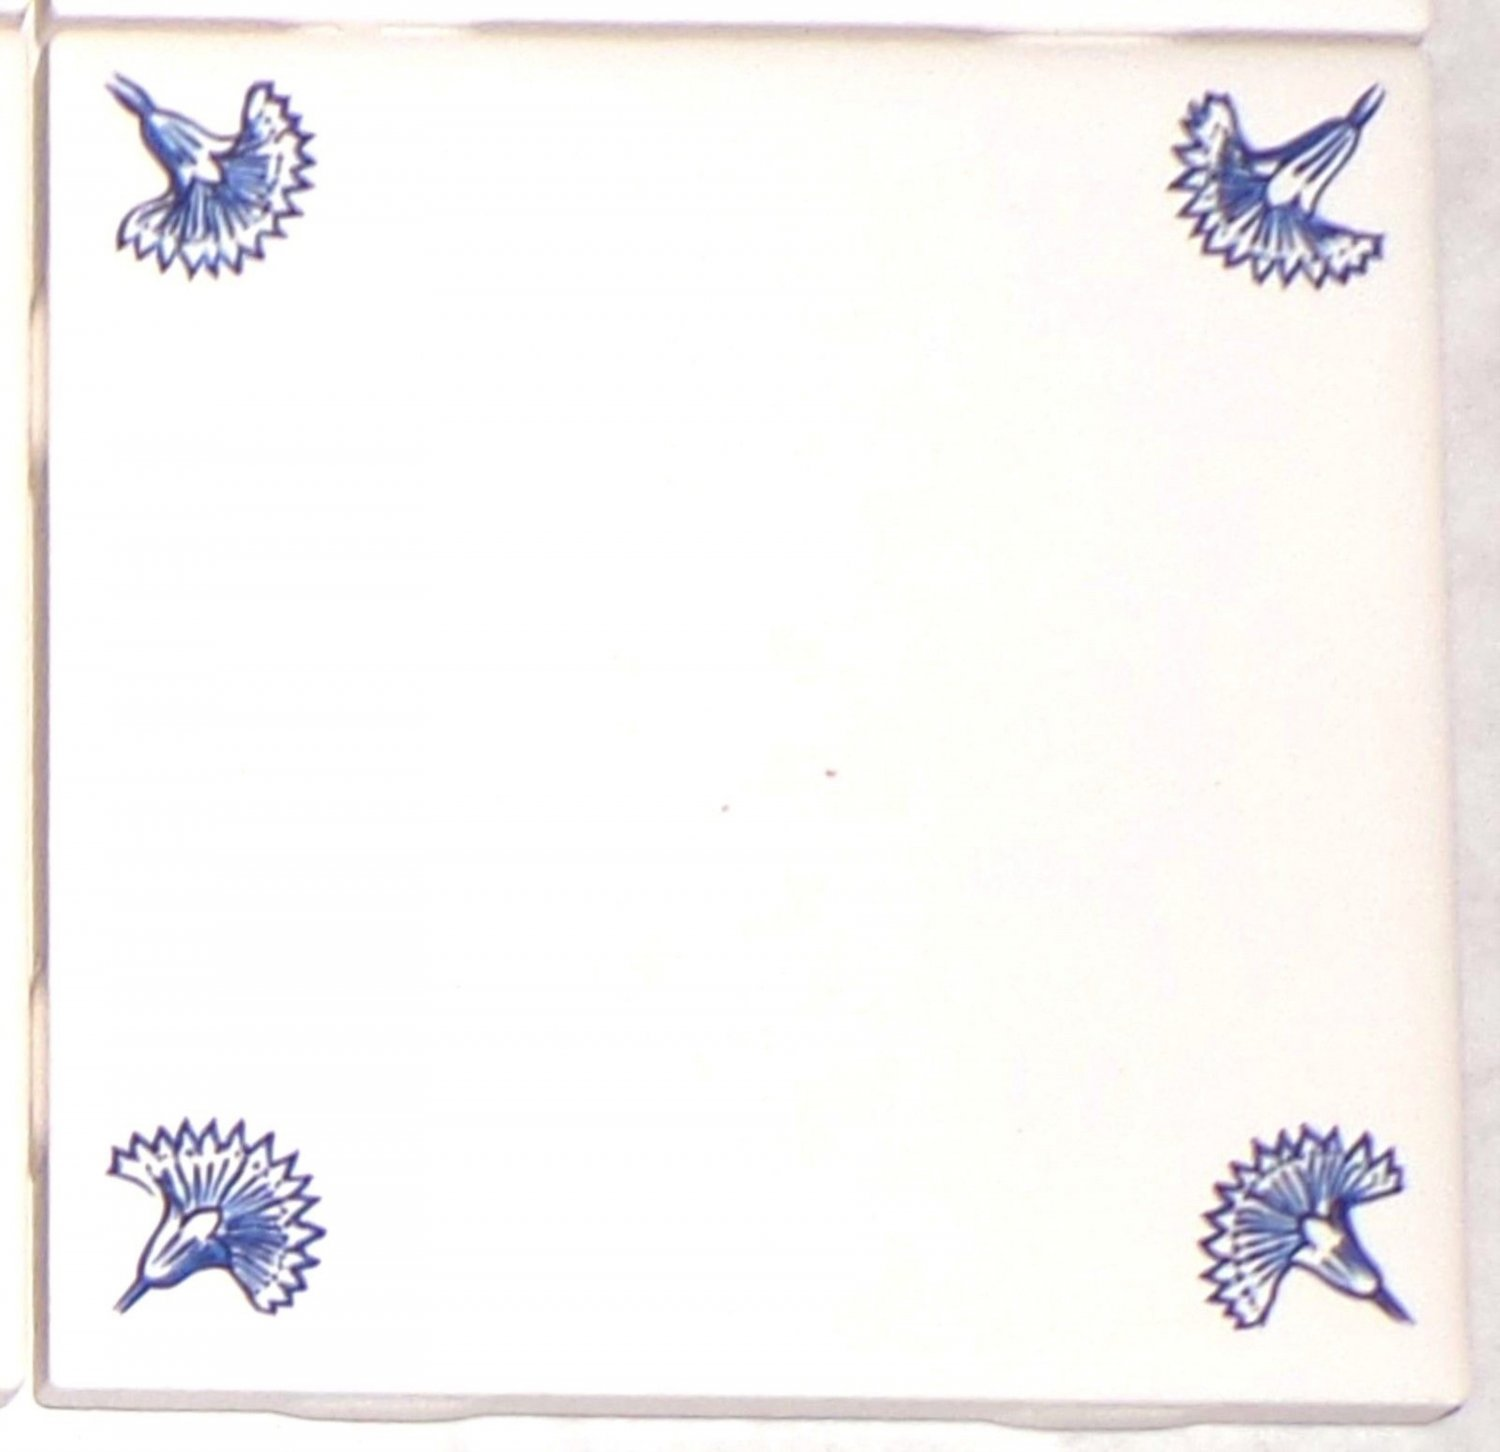 "Delft Ceramic Tiles Blue ONE /4.25"" Floret Flower Corners Only Kiln Fired"